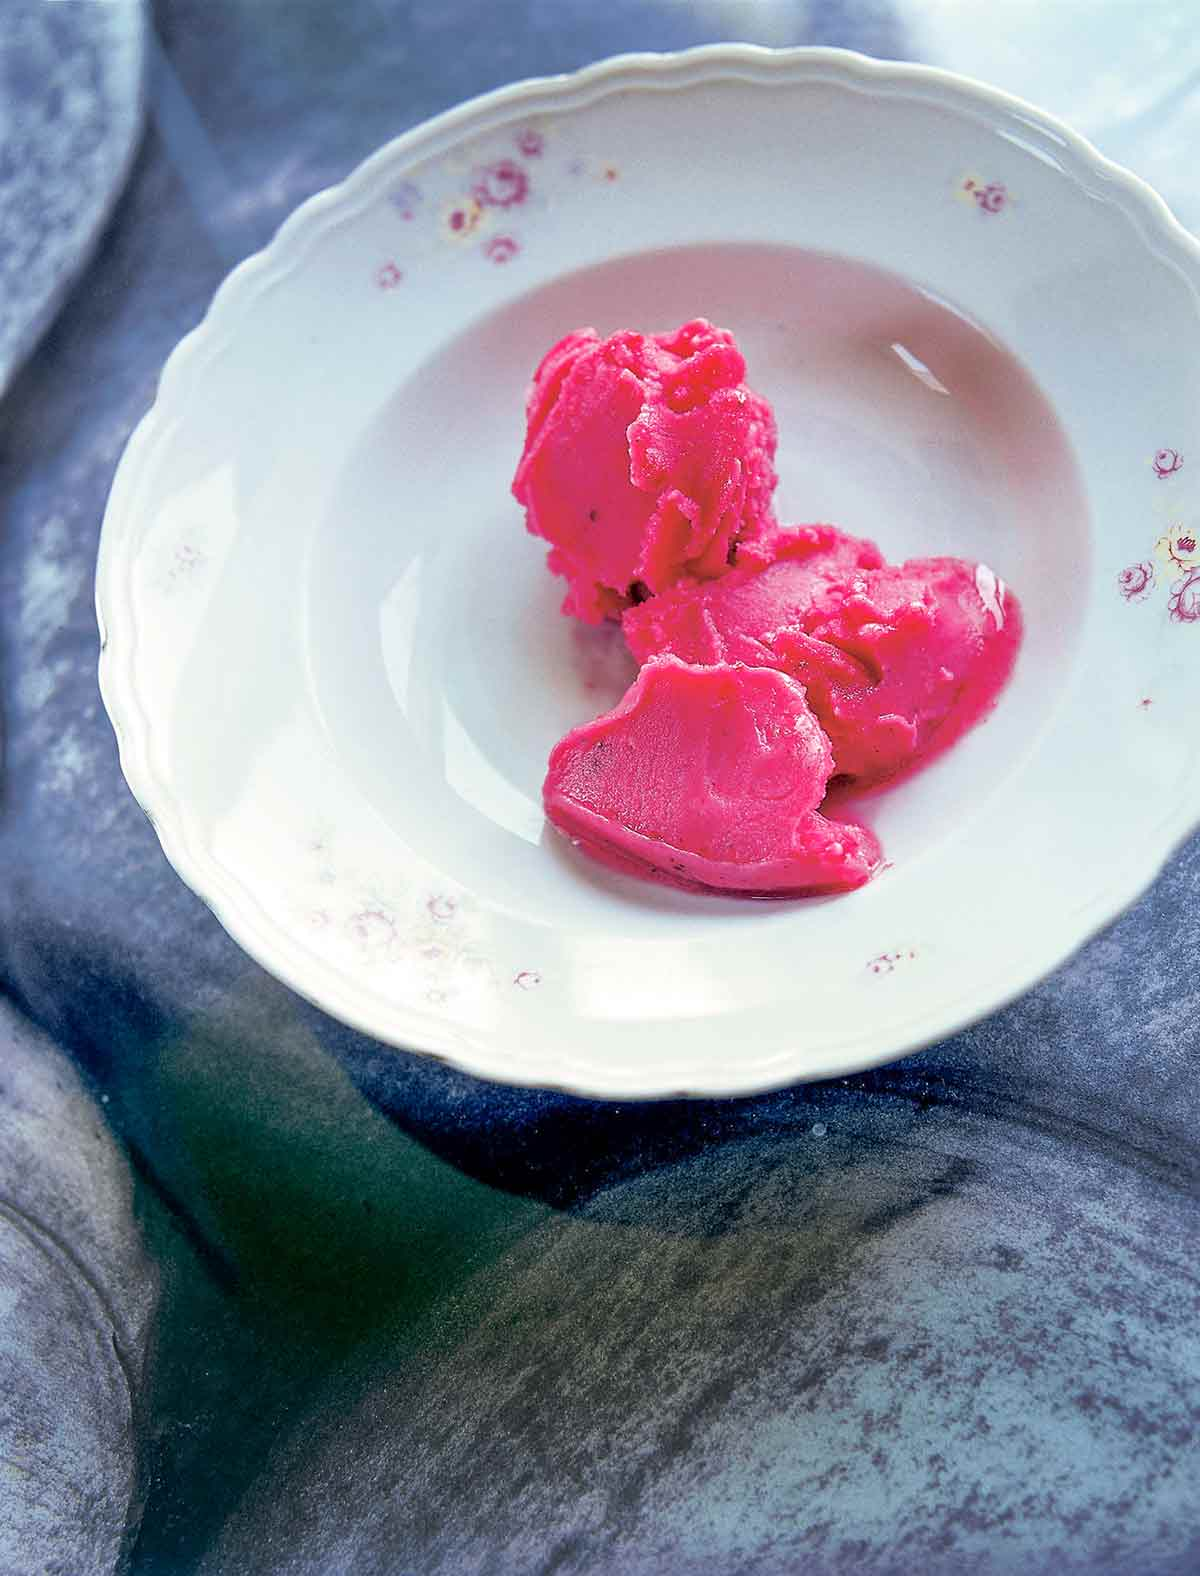 A few dollops of cranberry sorbet in a white porcelain bowl.